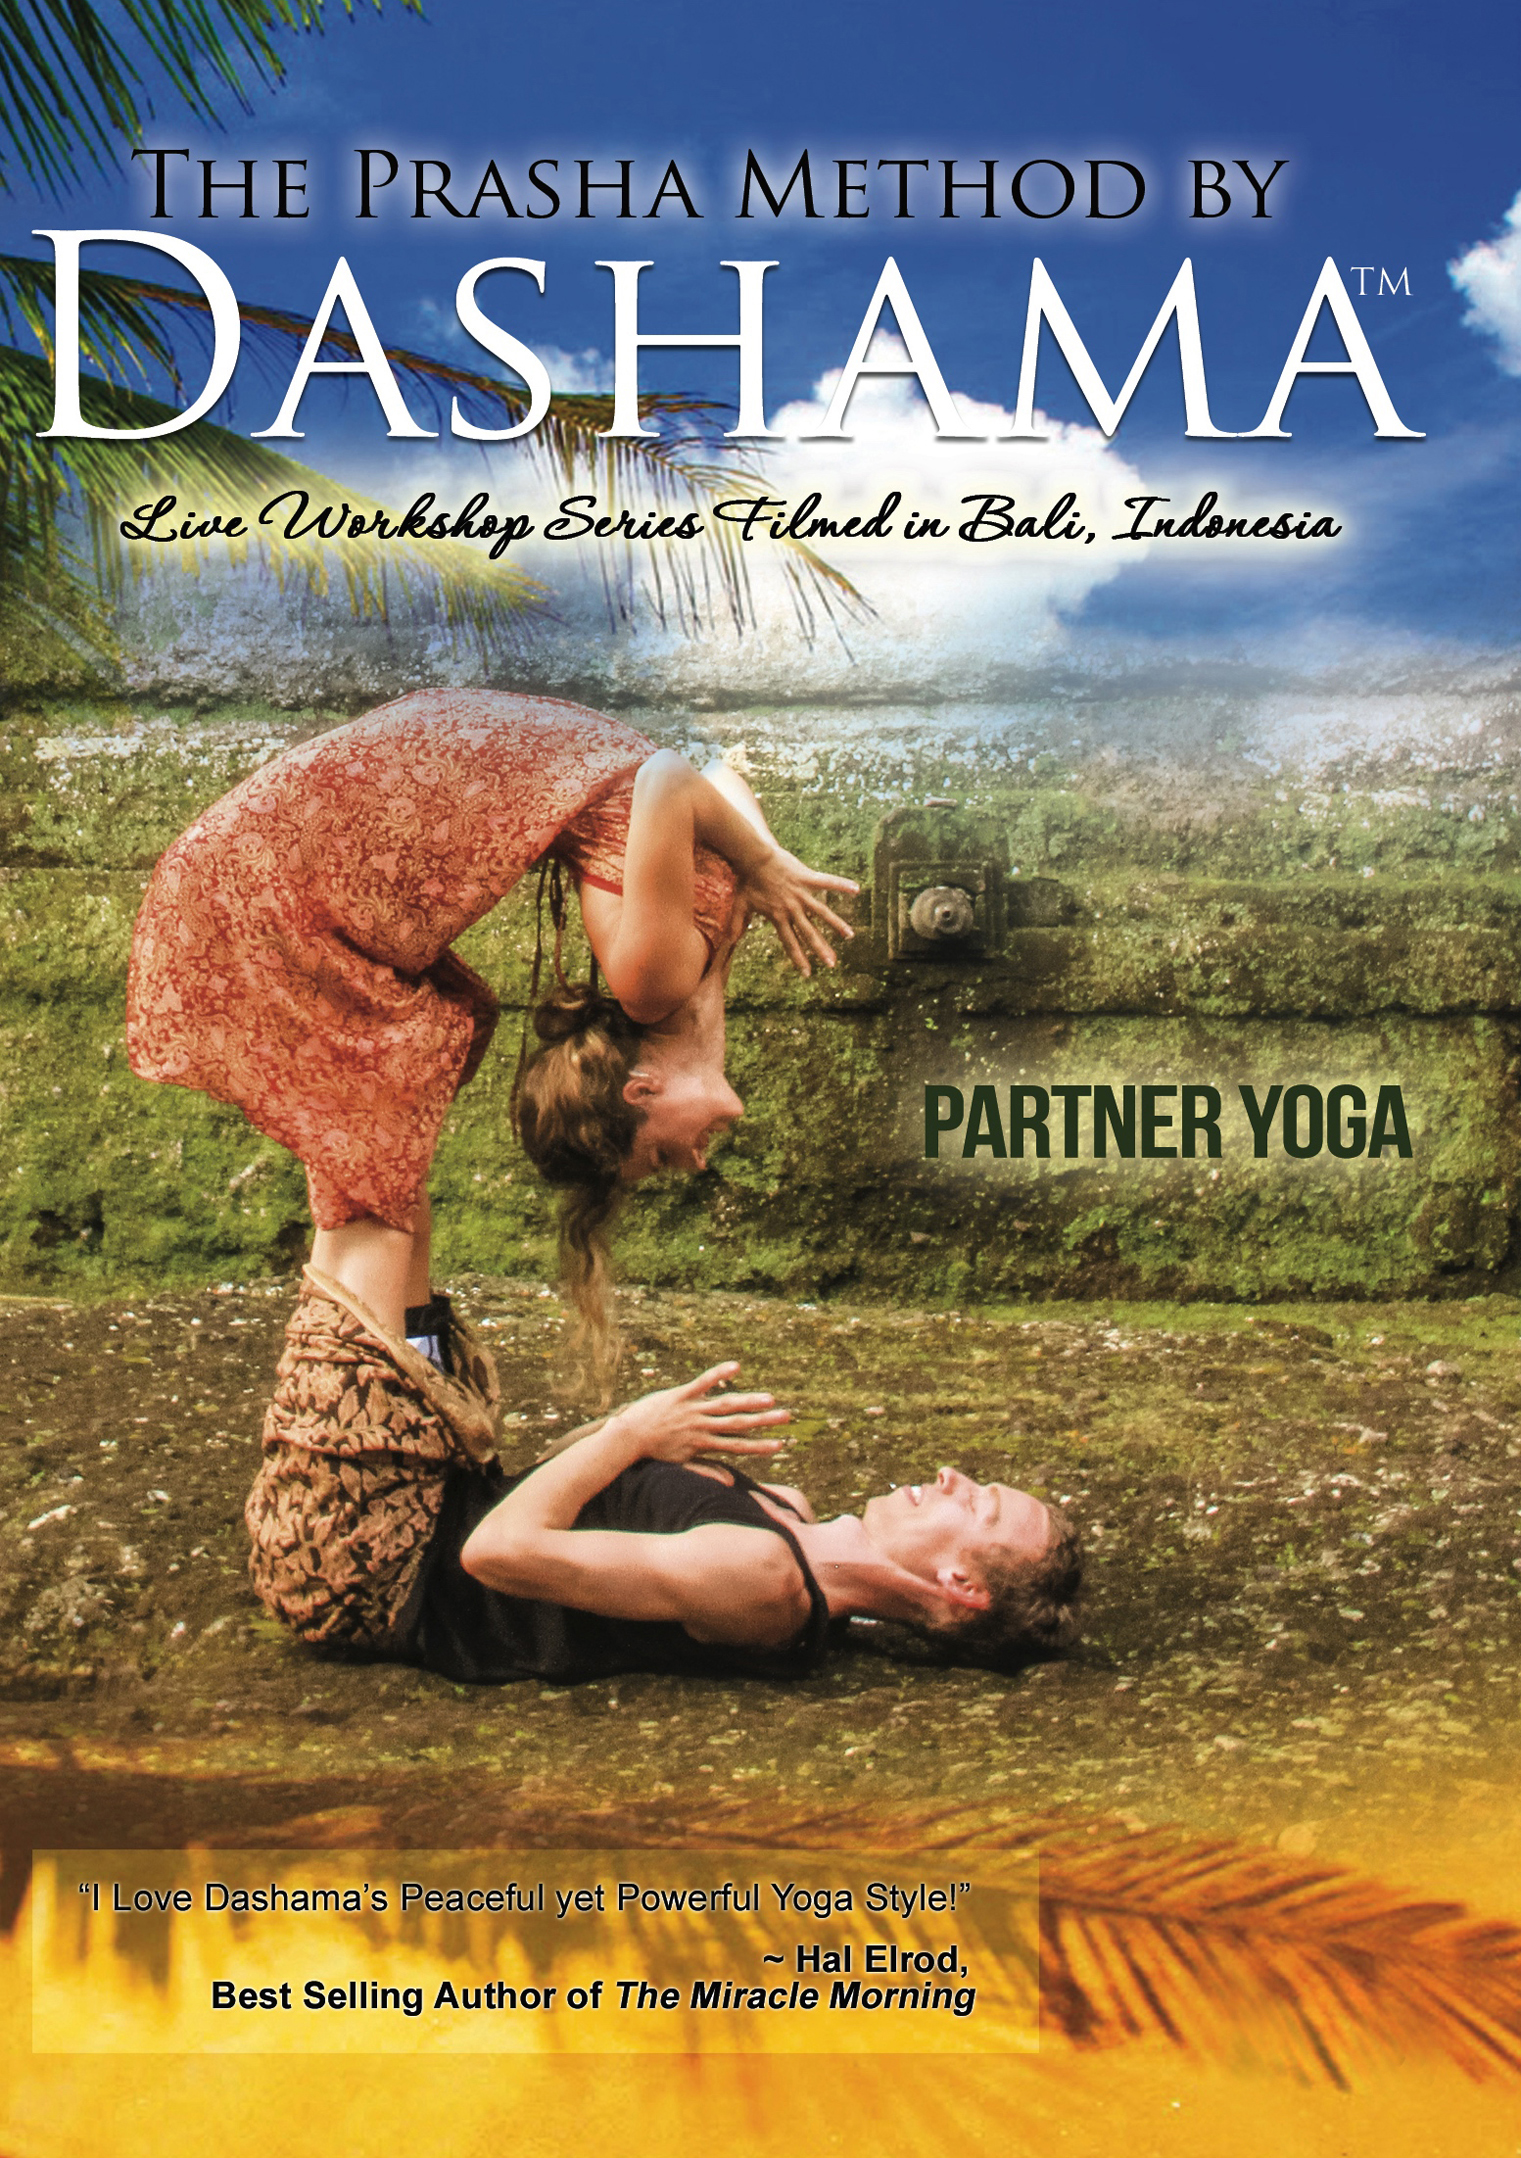 The Prasha Method by Dashama: Partner Yoga (2013)